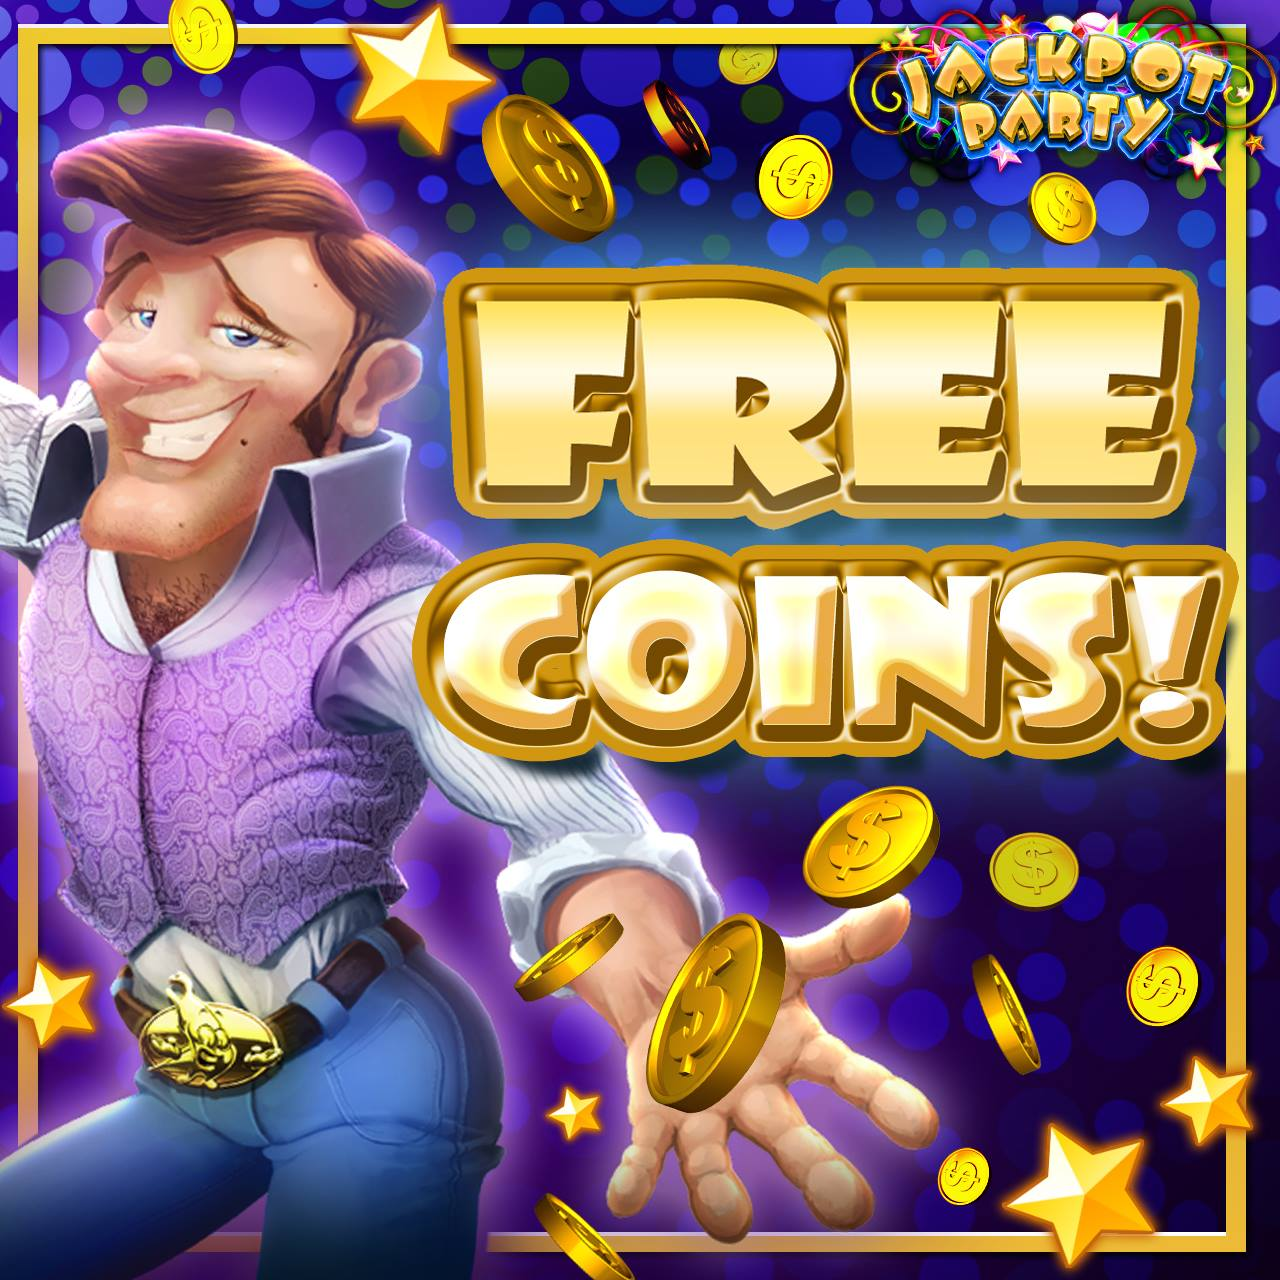 jackpot party casino free coin